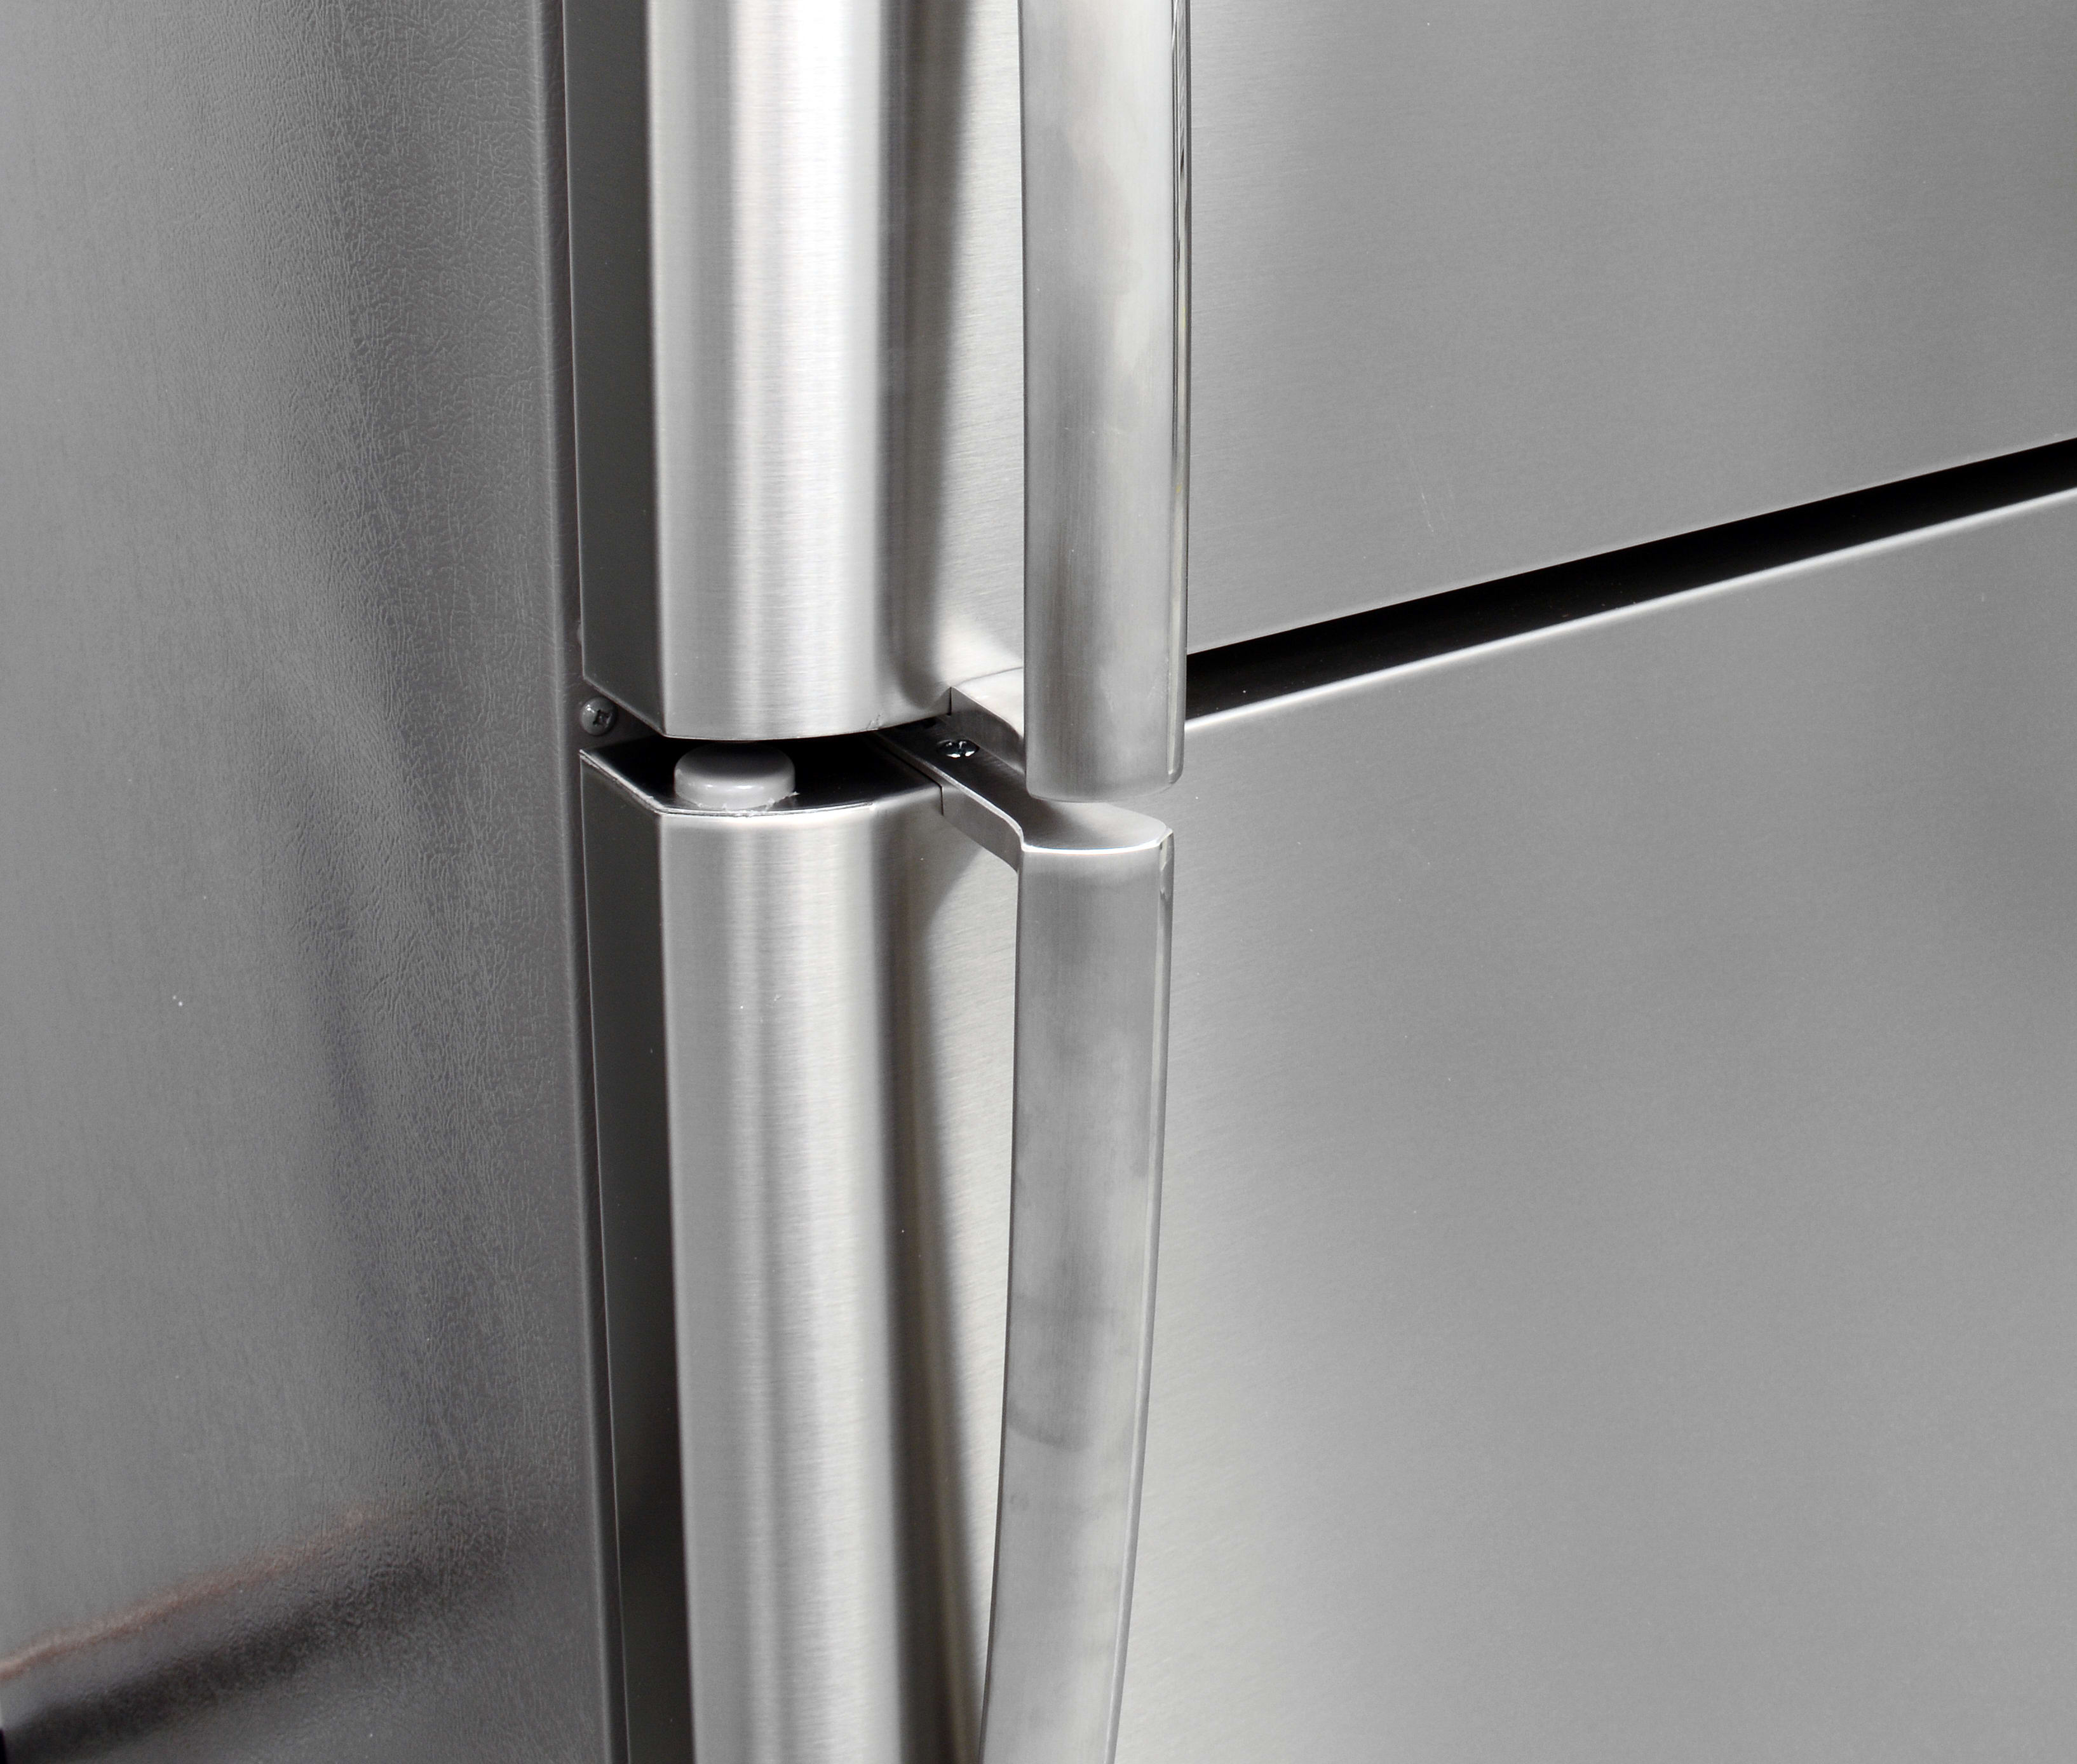 Frigidaire Uses A Special Smudge Proof Finish For The Doors And Handles On  The Gallery